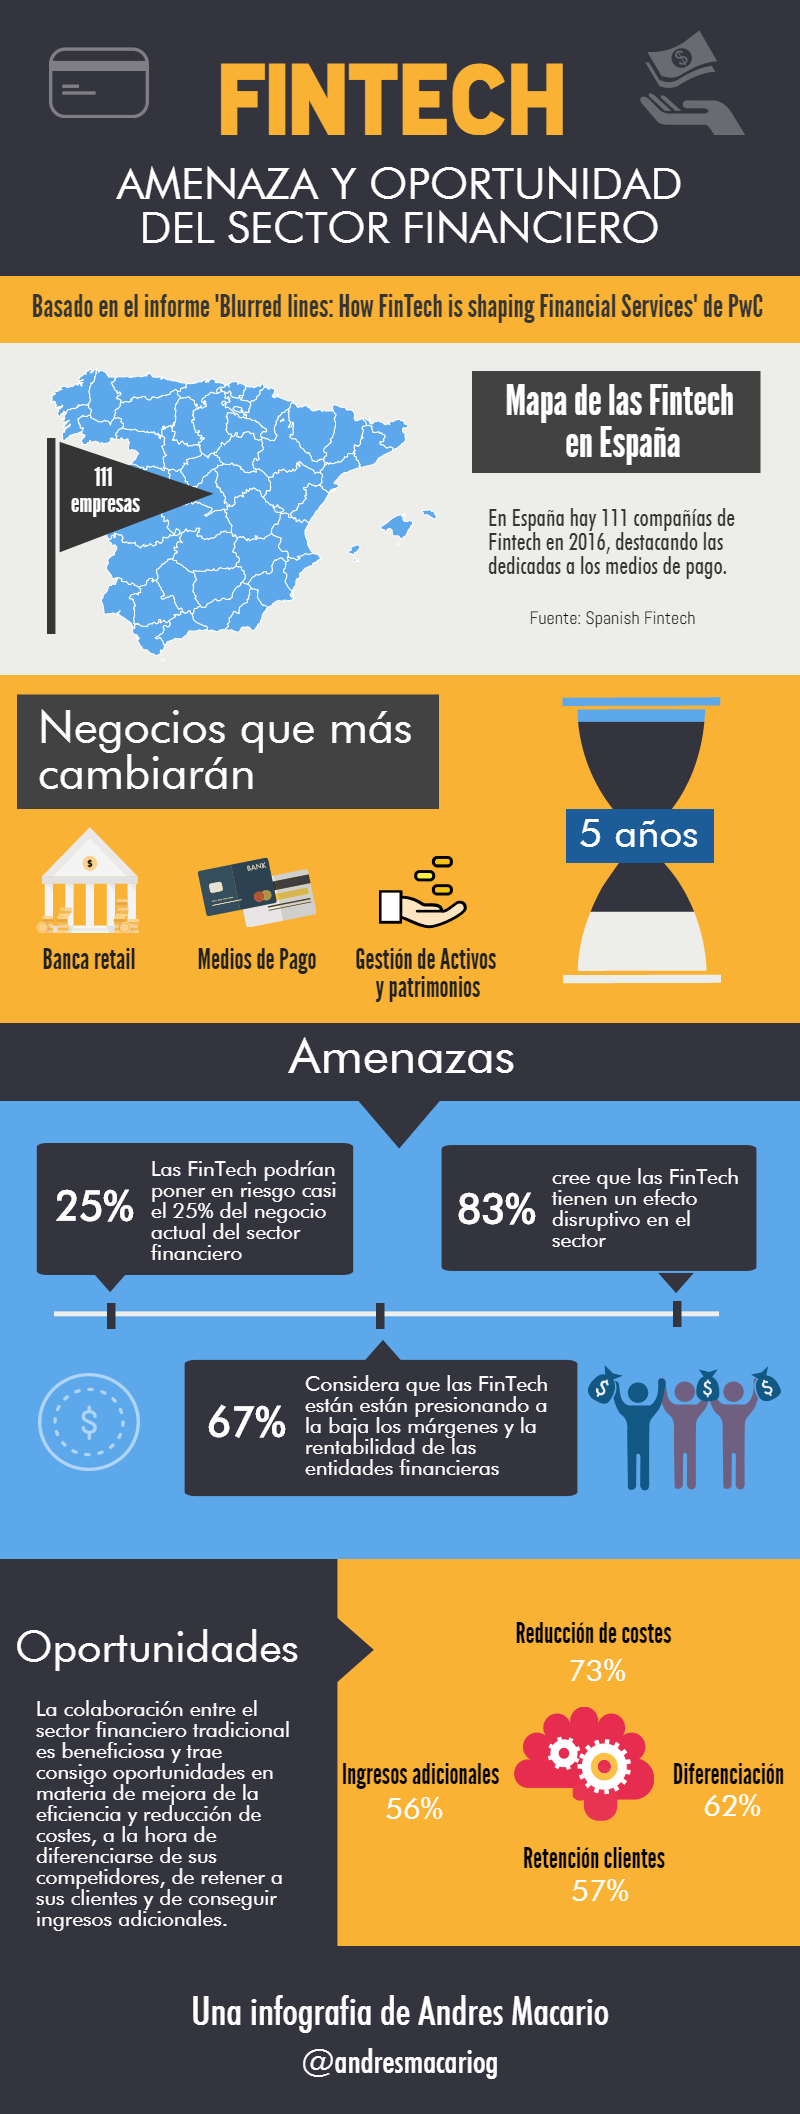 FinTech: amenaza y oportunidad del sector financiero